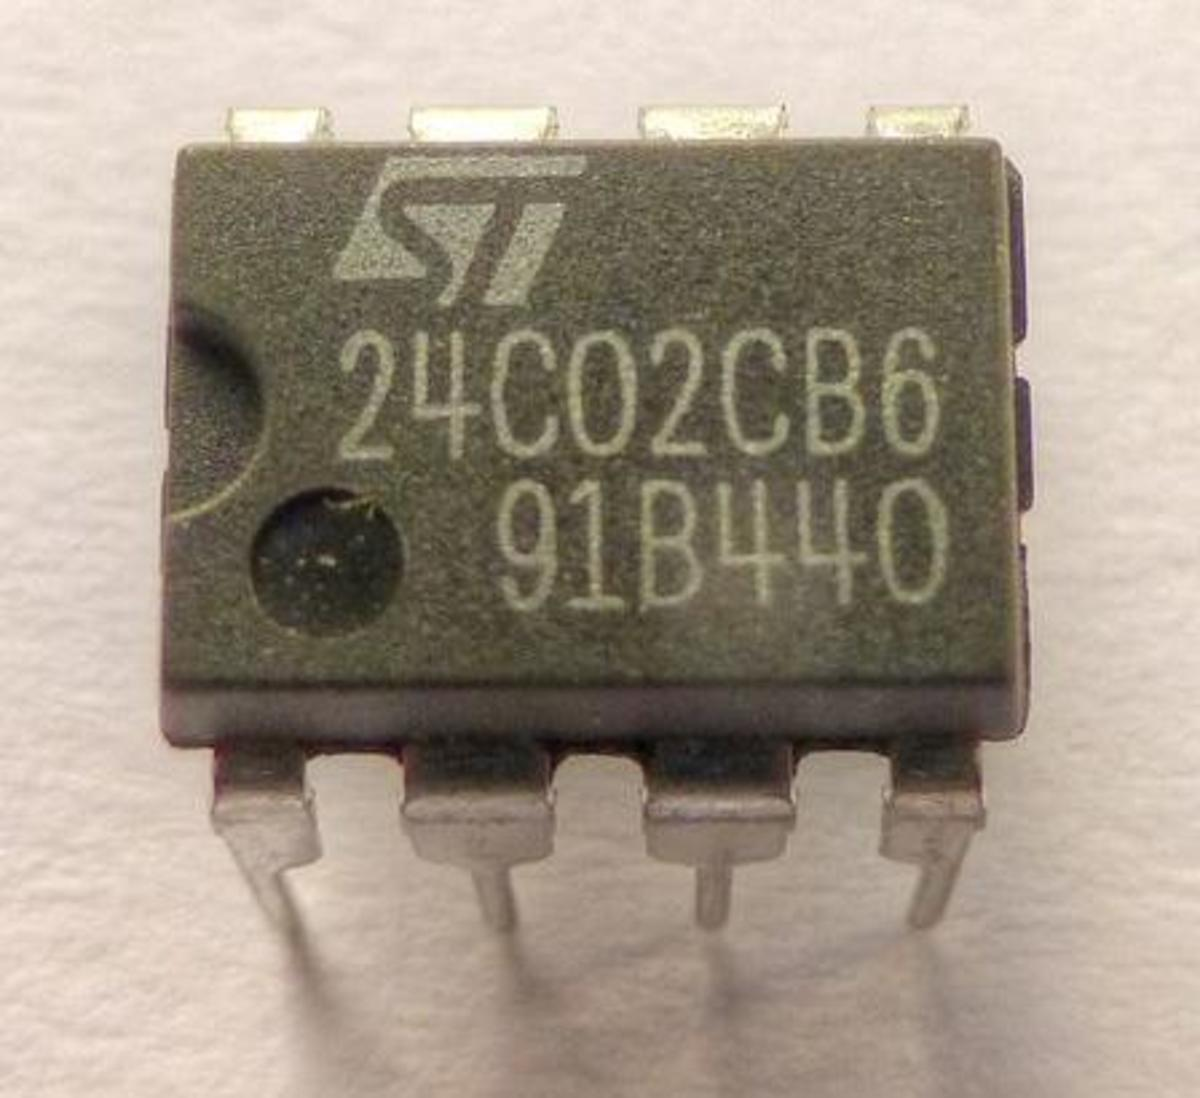 EEPROM reprogramming is required to rectify wrong parameters.